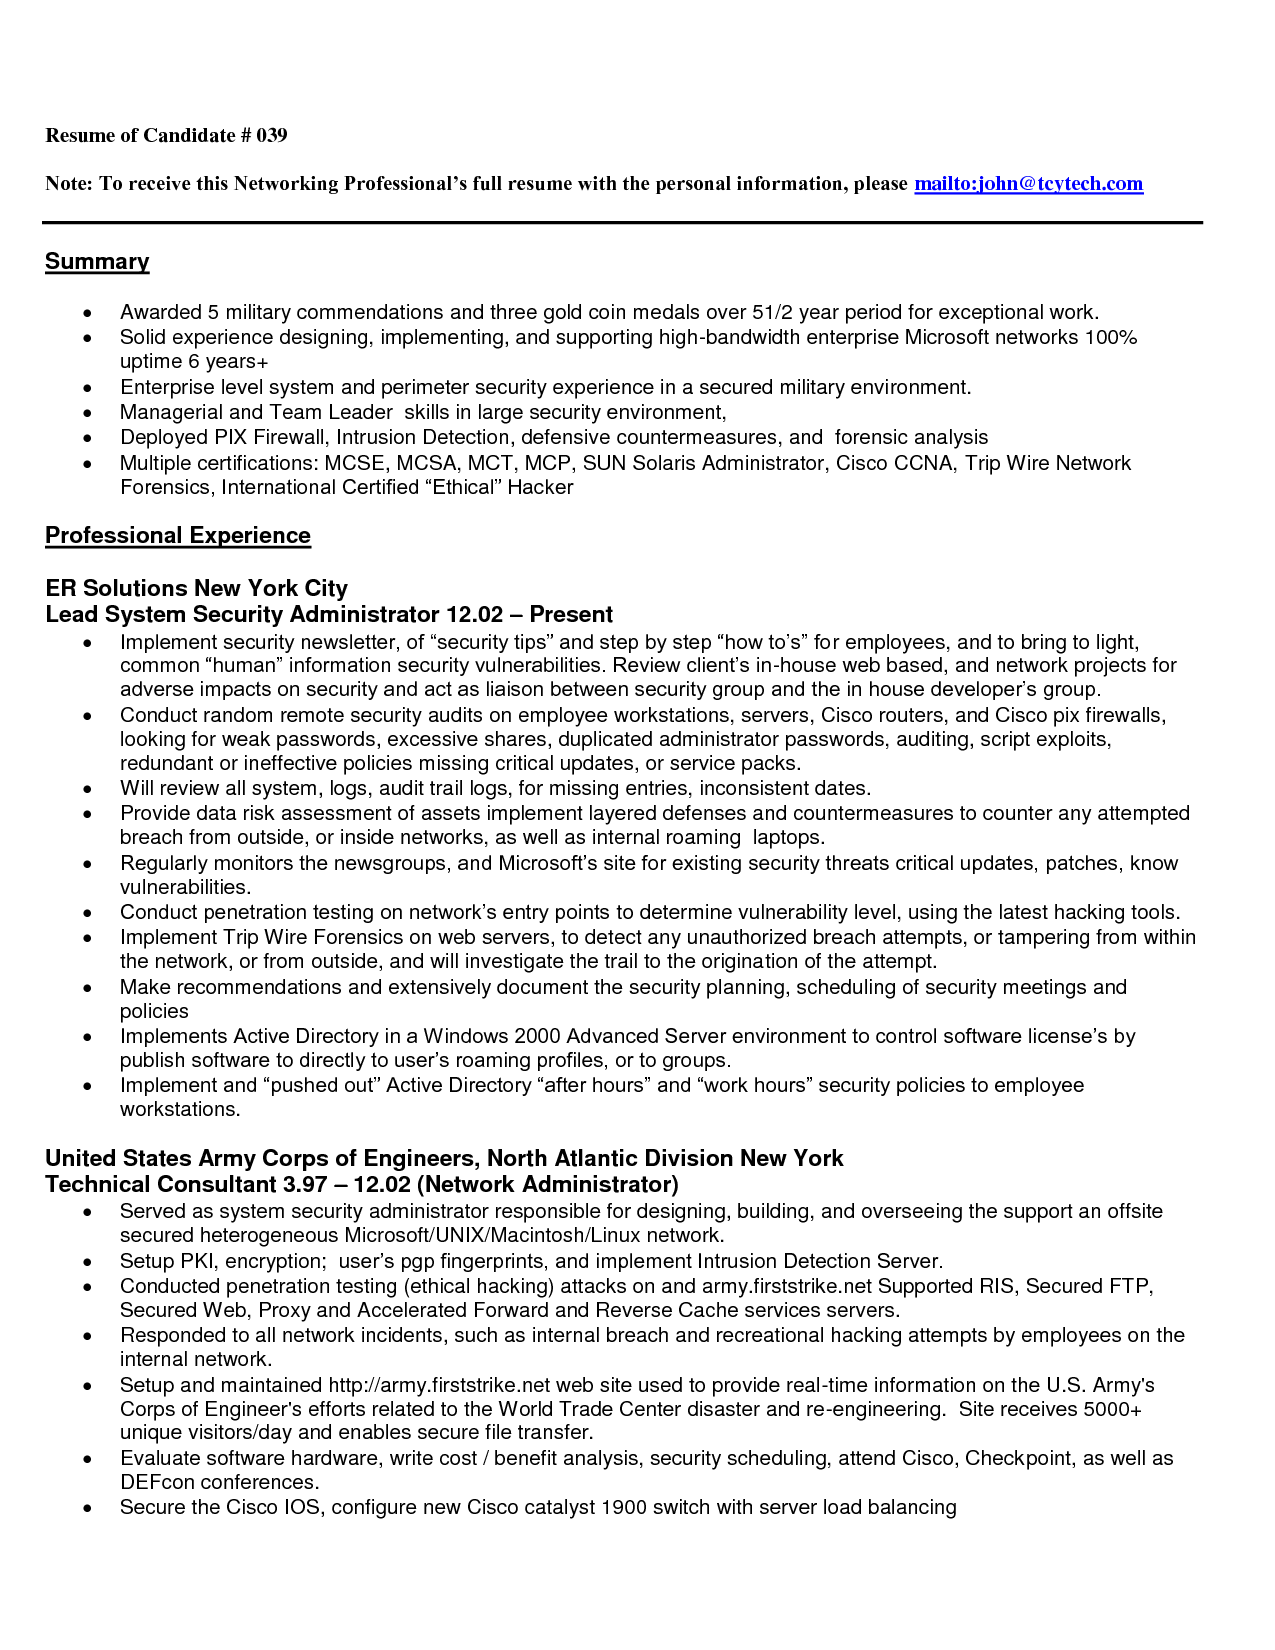 resume sample for entry level engineer resume templates - Sample Entry Level Resume Templates